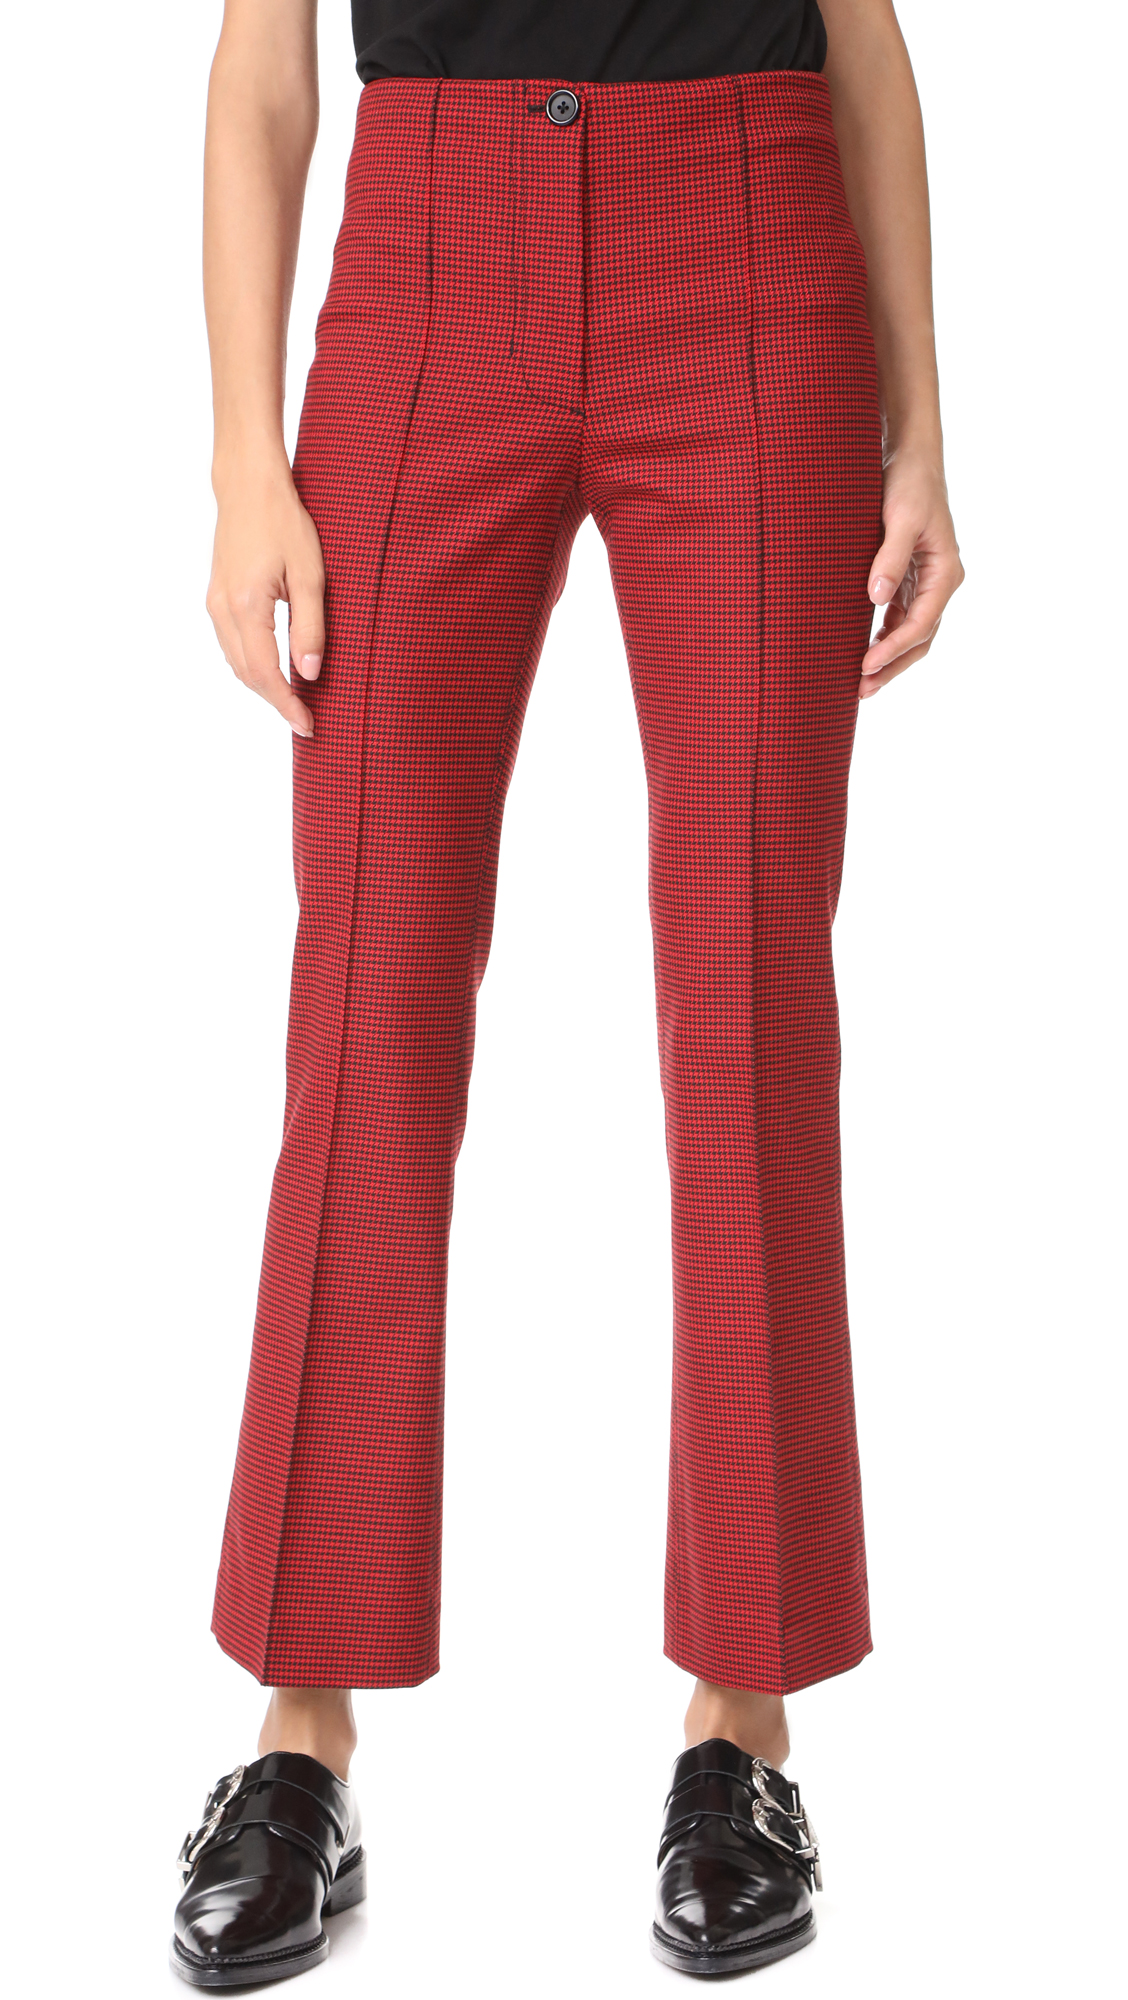 Helmut Lang Houndstooth Cropped Flare Pants - Amaryllis Multi